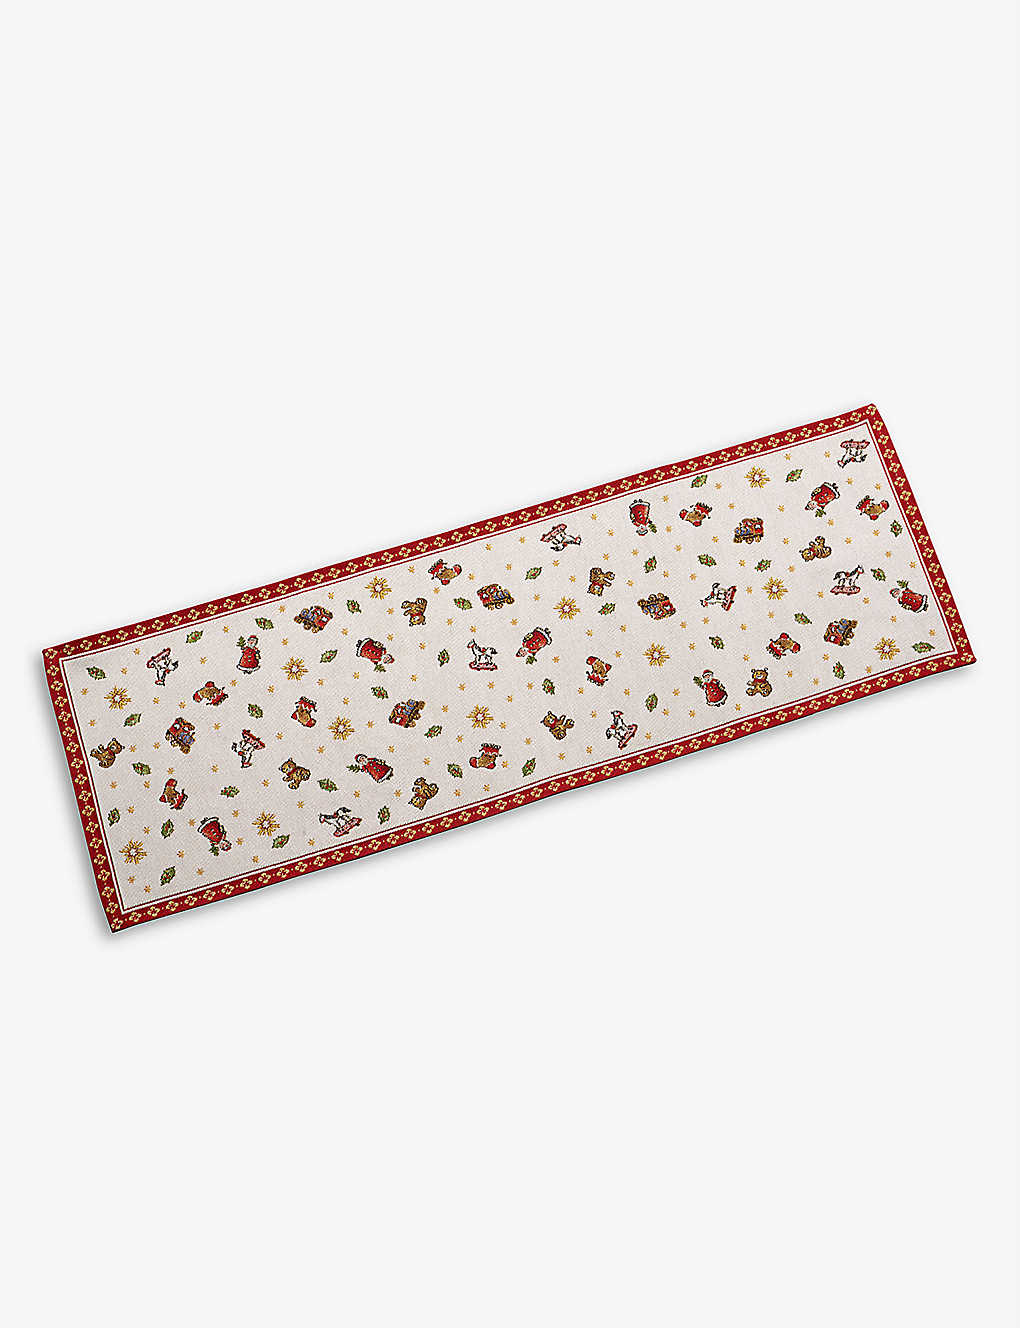 VILLEROY & BOCH: Toy's Delight tapestry runner 32x96cm